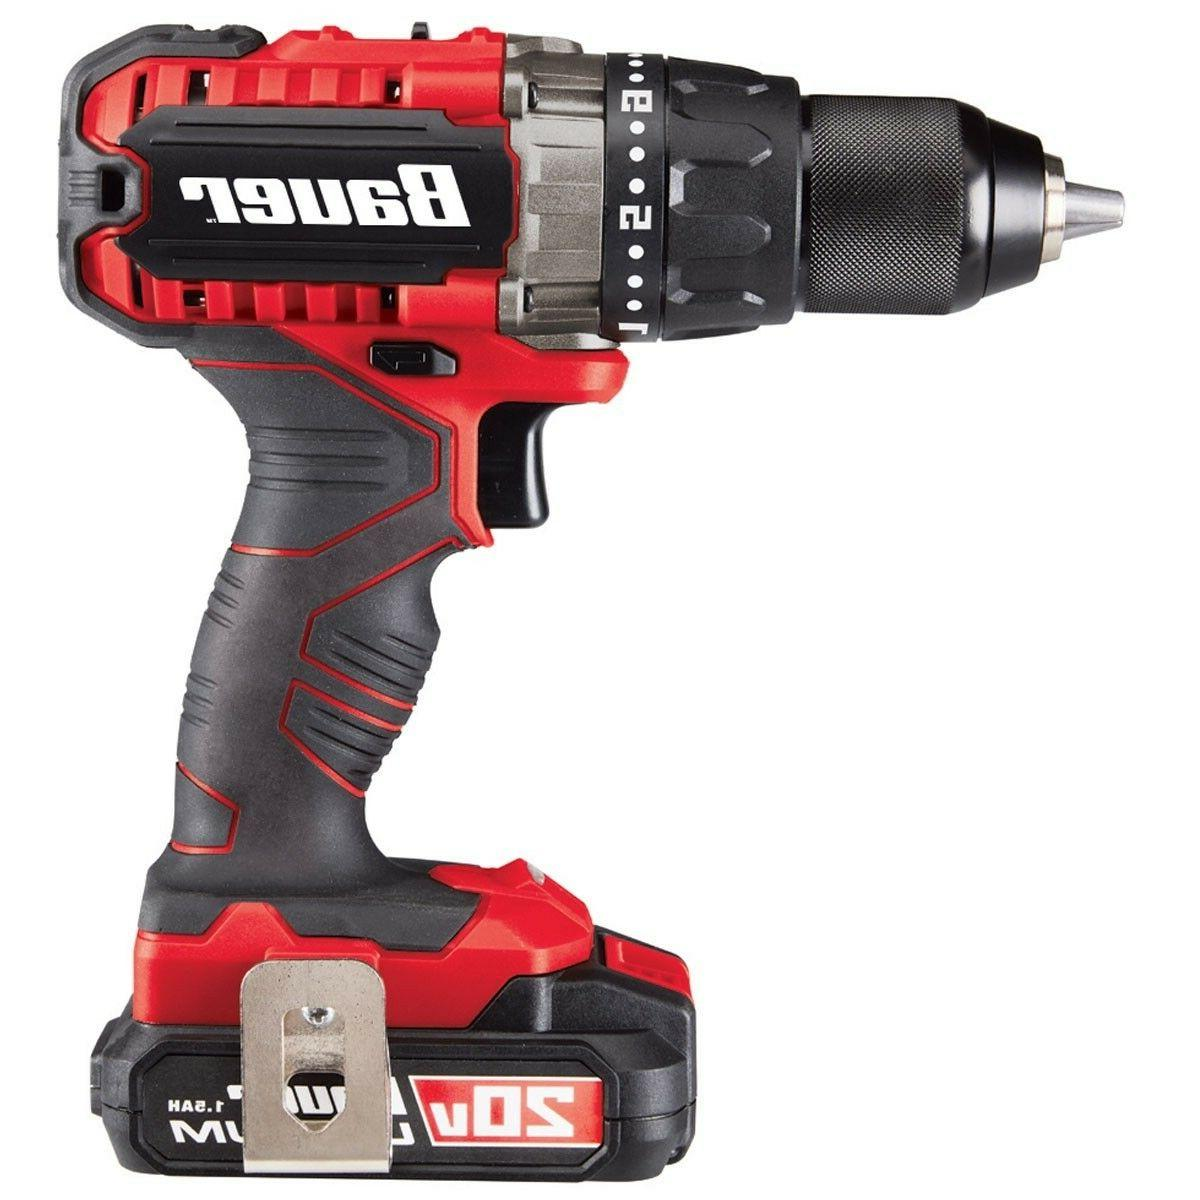 20V Lithium Drill/Driver Kit w/Battery/Charger/Bag/Bits